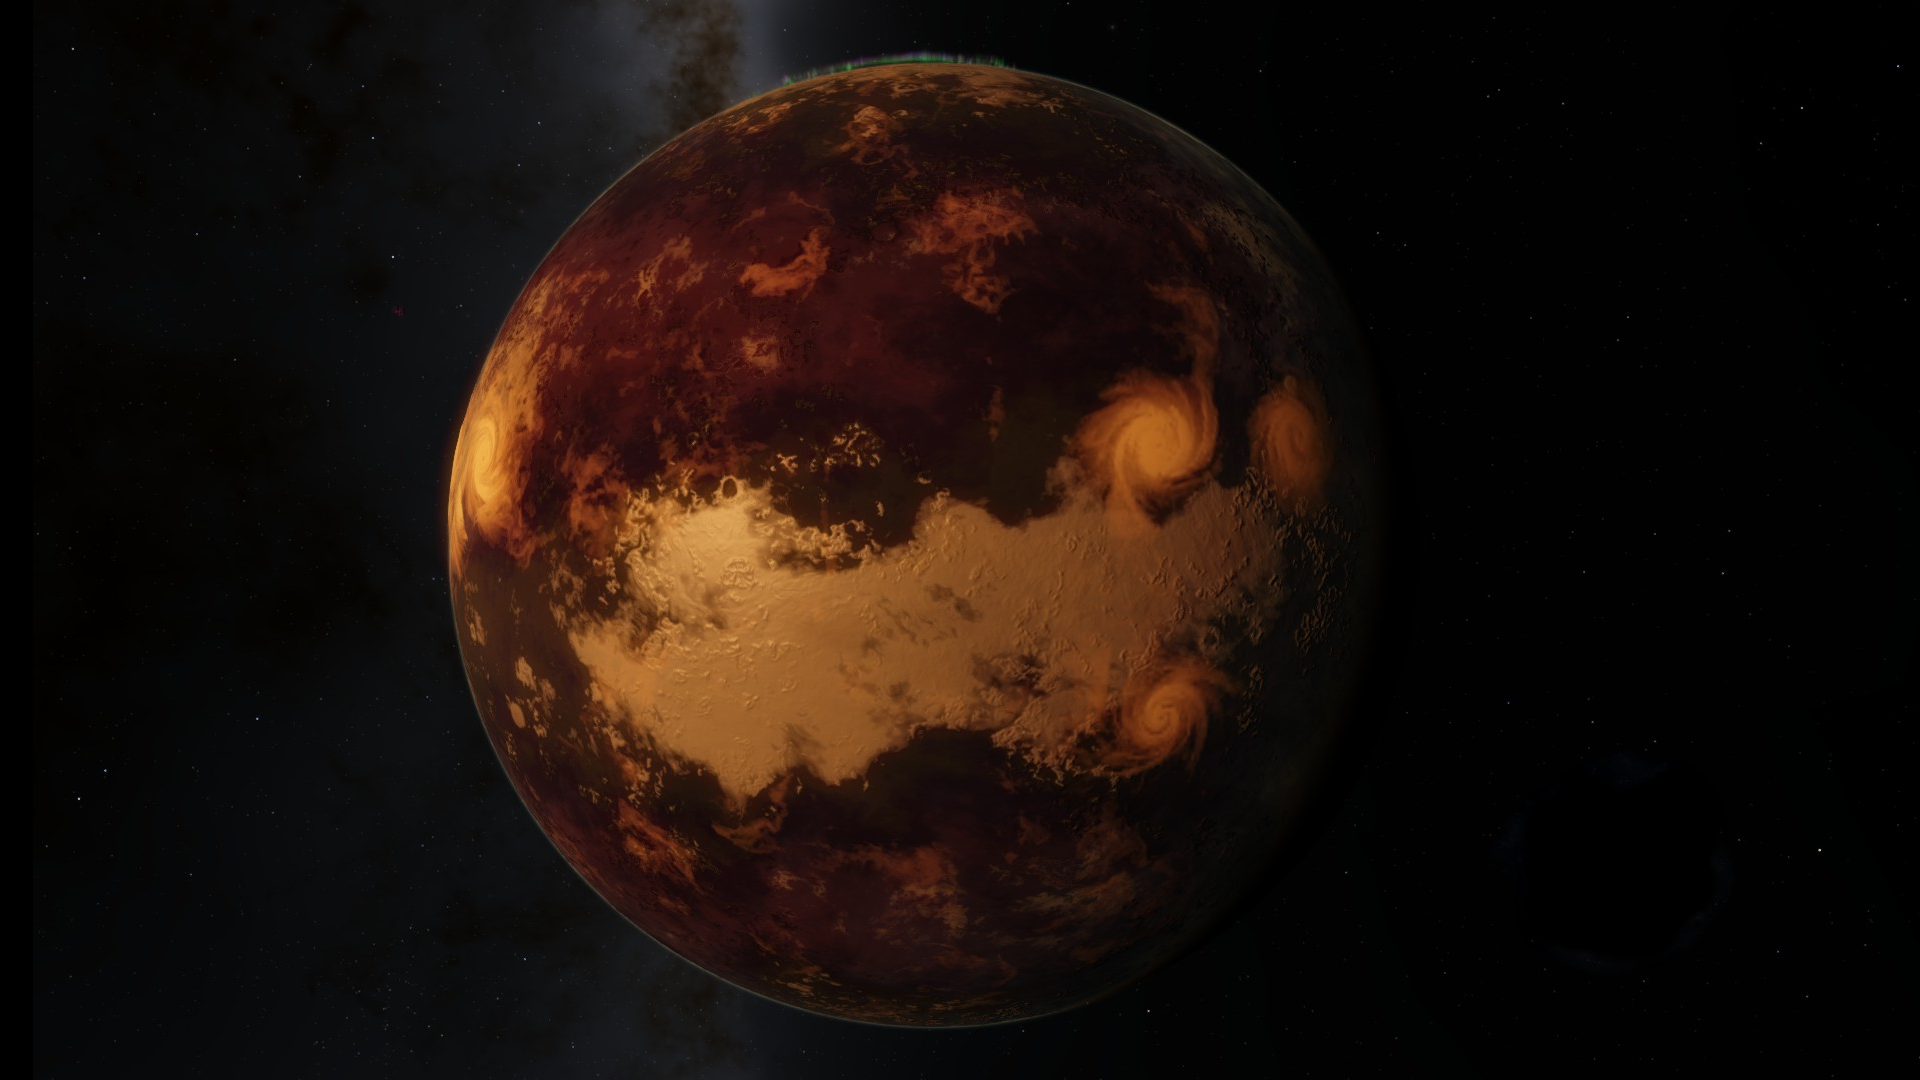 5 Terrifying Planets You Don't Want To Visit